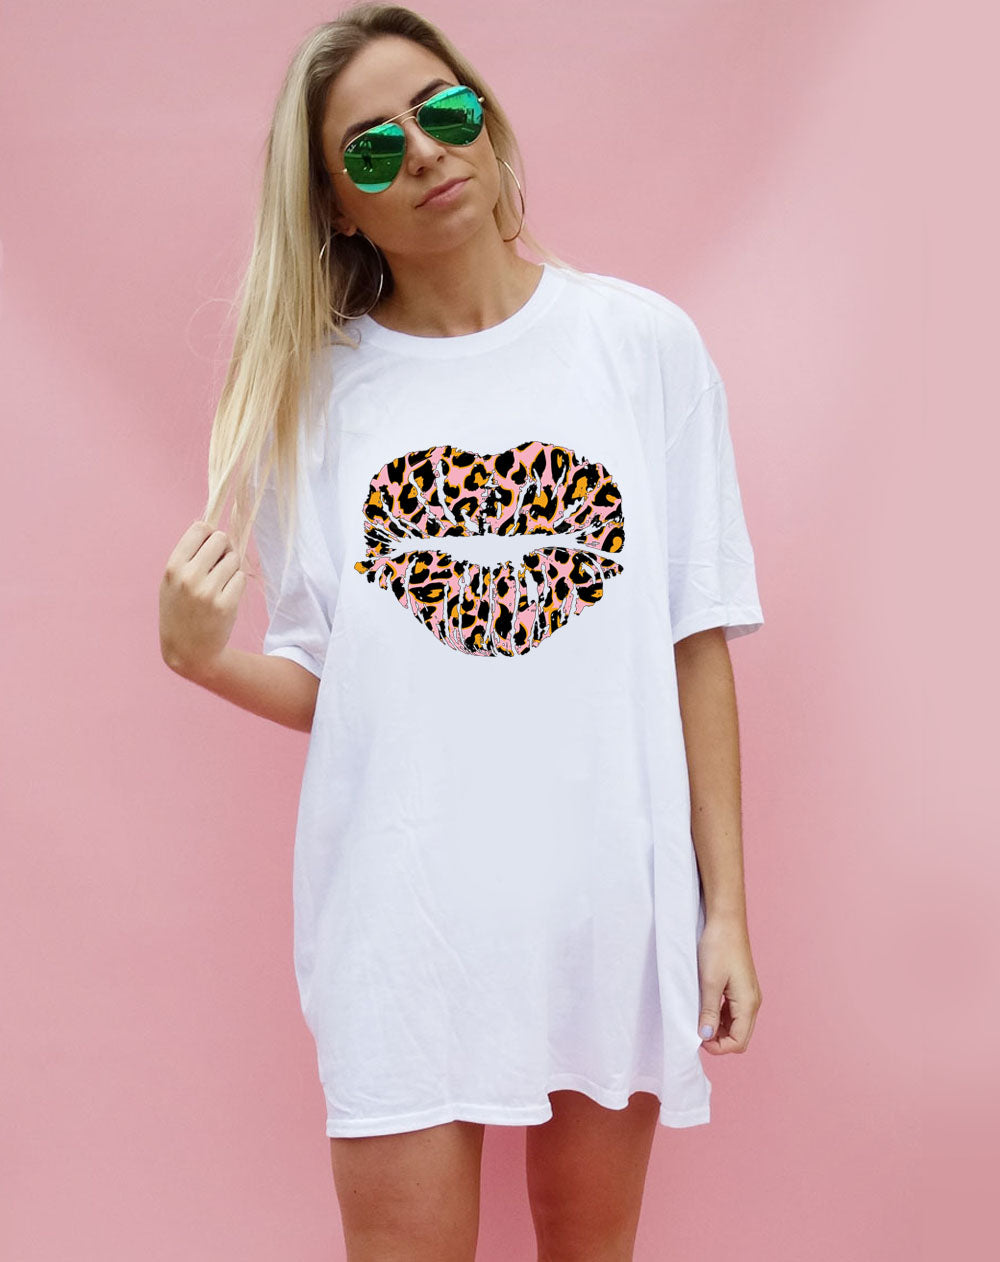 Pink and Orange Leopard Lip Kiss Oversize Tshirt Dress